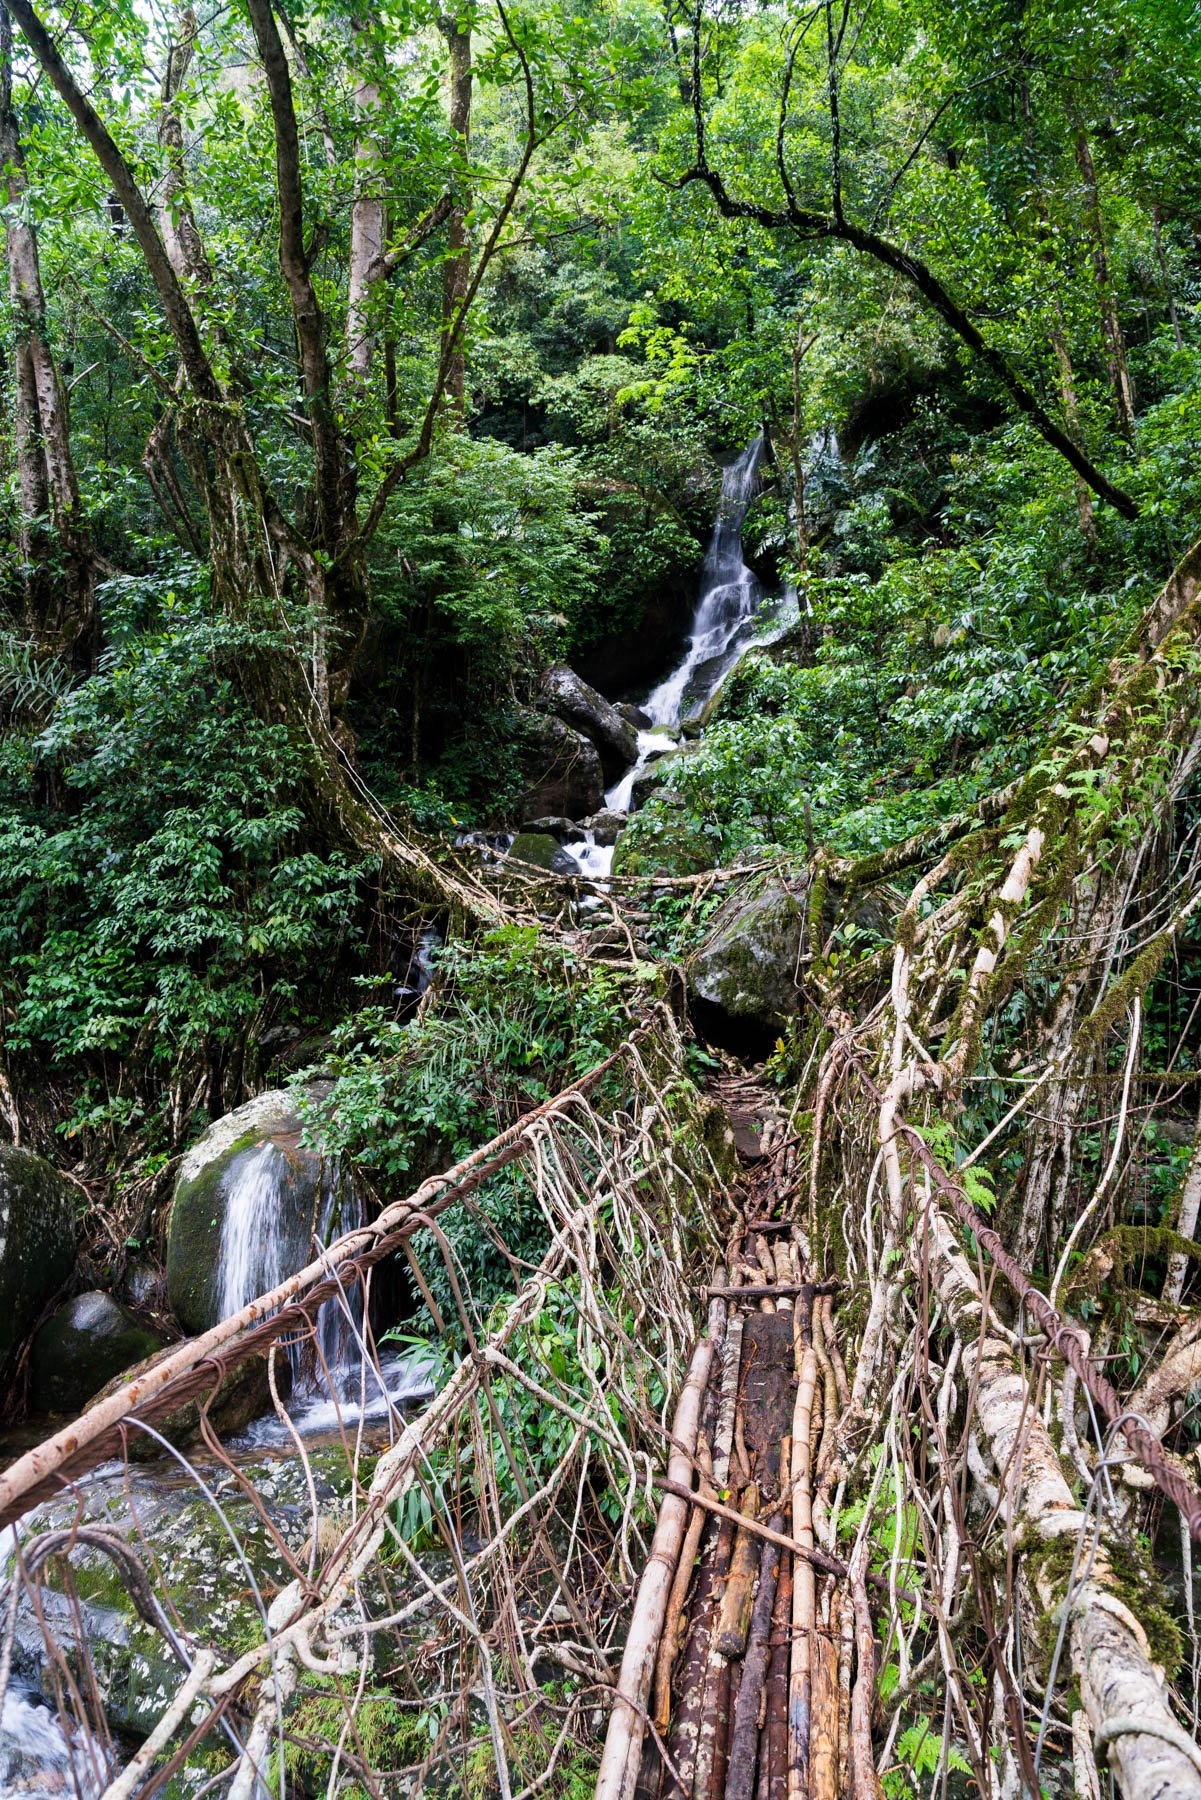 A waterfall and root bridge in the works near Nongriat village in Meghalaya state, India. The bridge is made from the roots of rubber trees, carefully guided across the expanse with betel nut tree trunks over several decades.